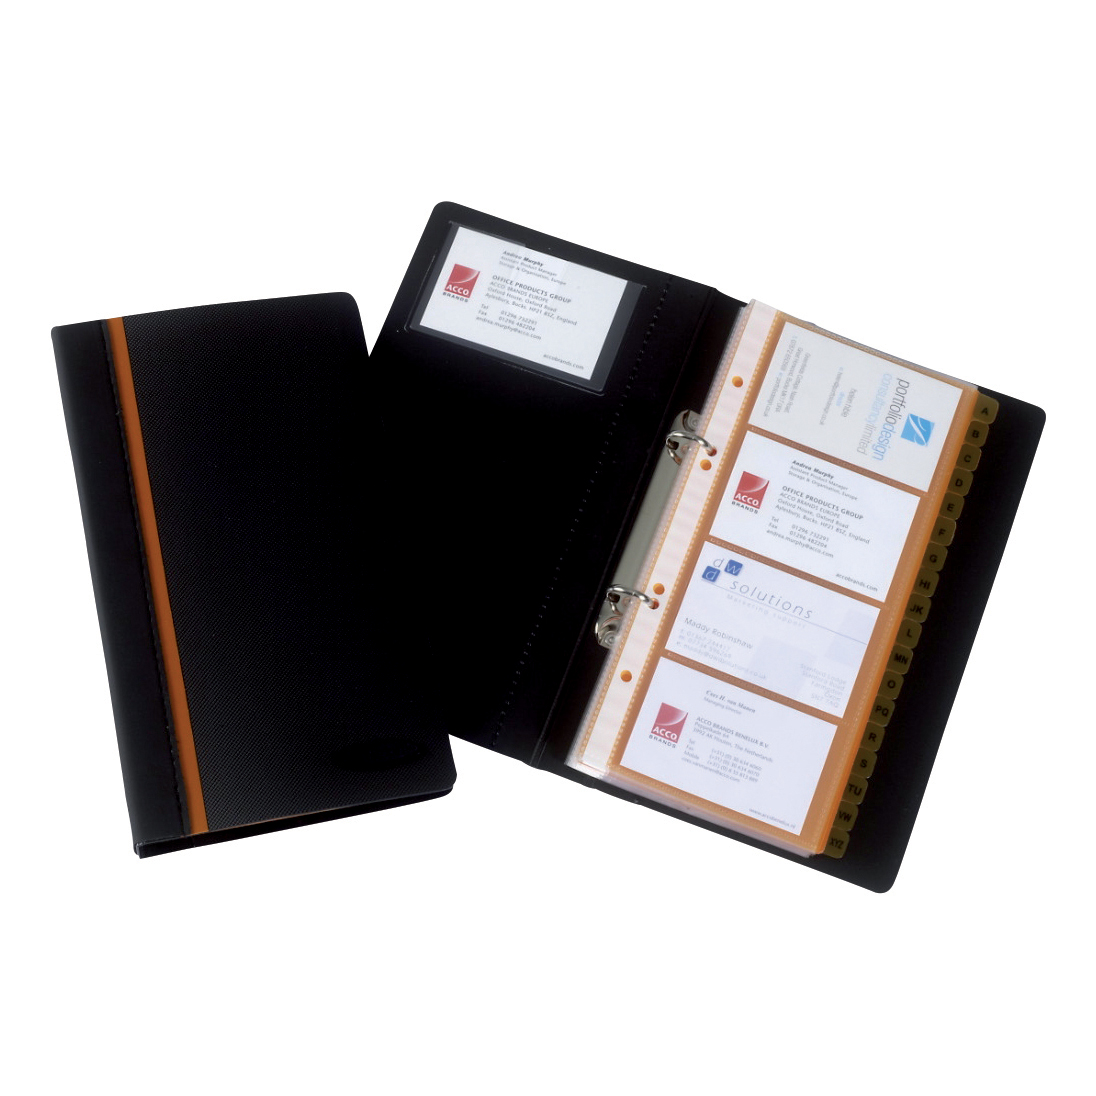 Rexel business card book professional ring binder with a z index rexel business card book professional ring binder with a z index capacity 128 cards ref 2101131 reheart Image collections